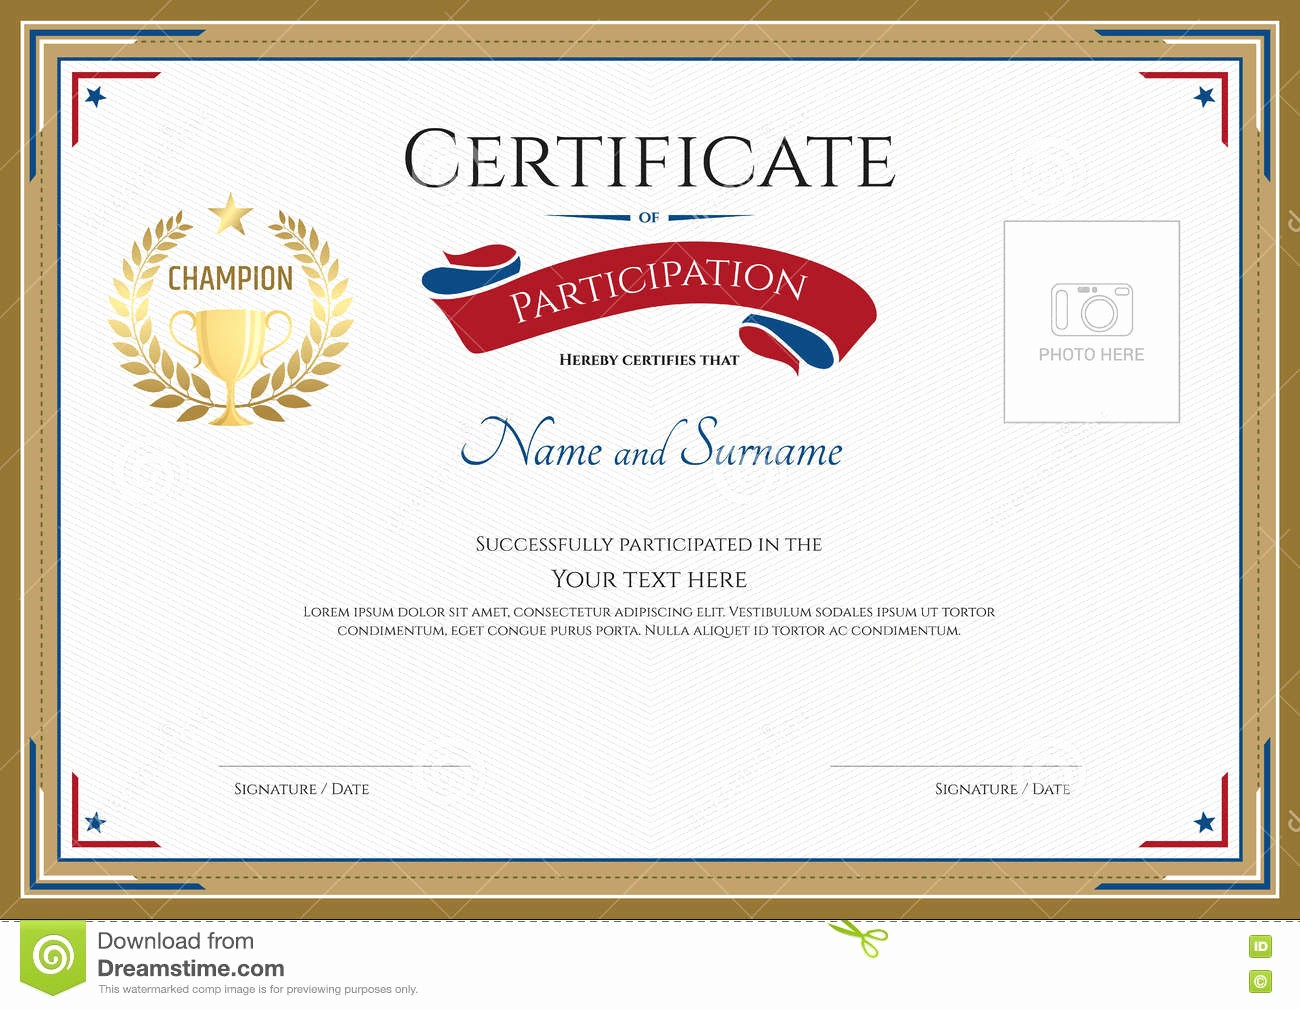 Free Download Templates for Word Inspirational Certificate Participation Template Free Download